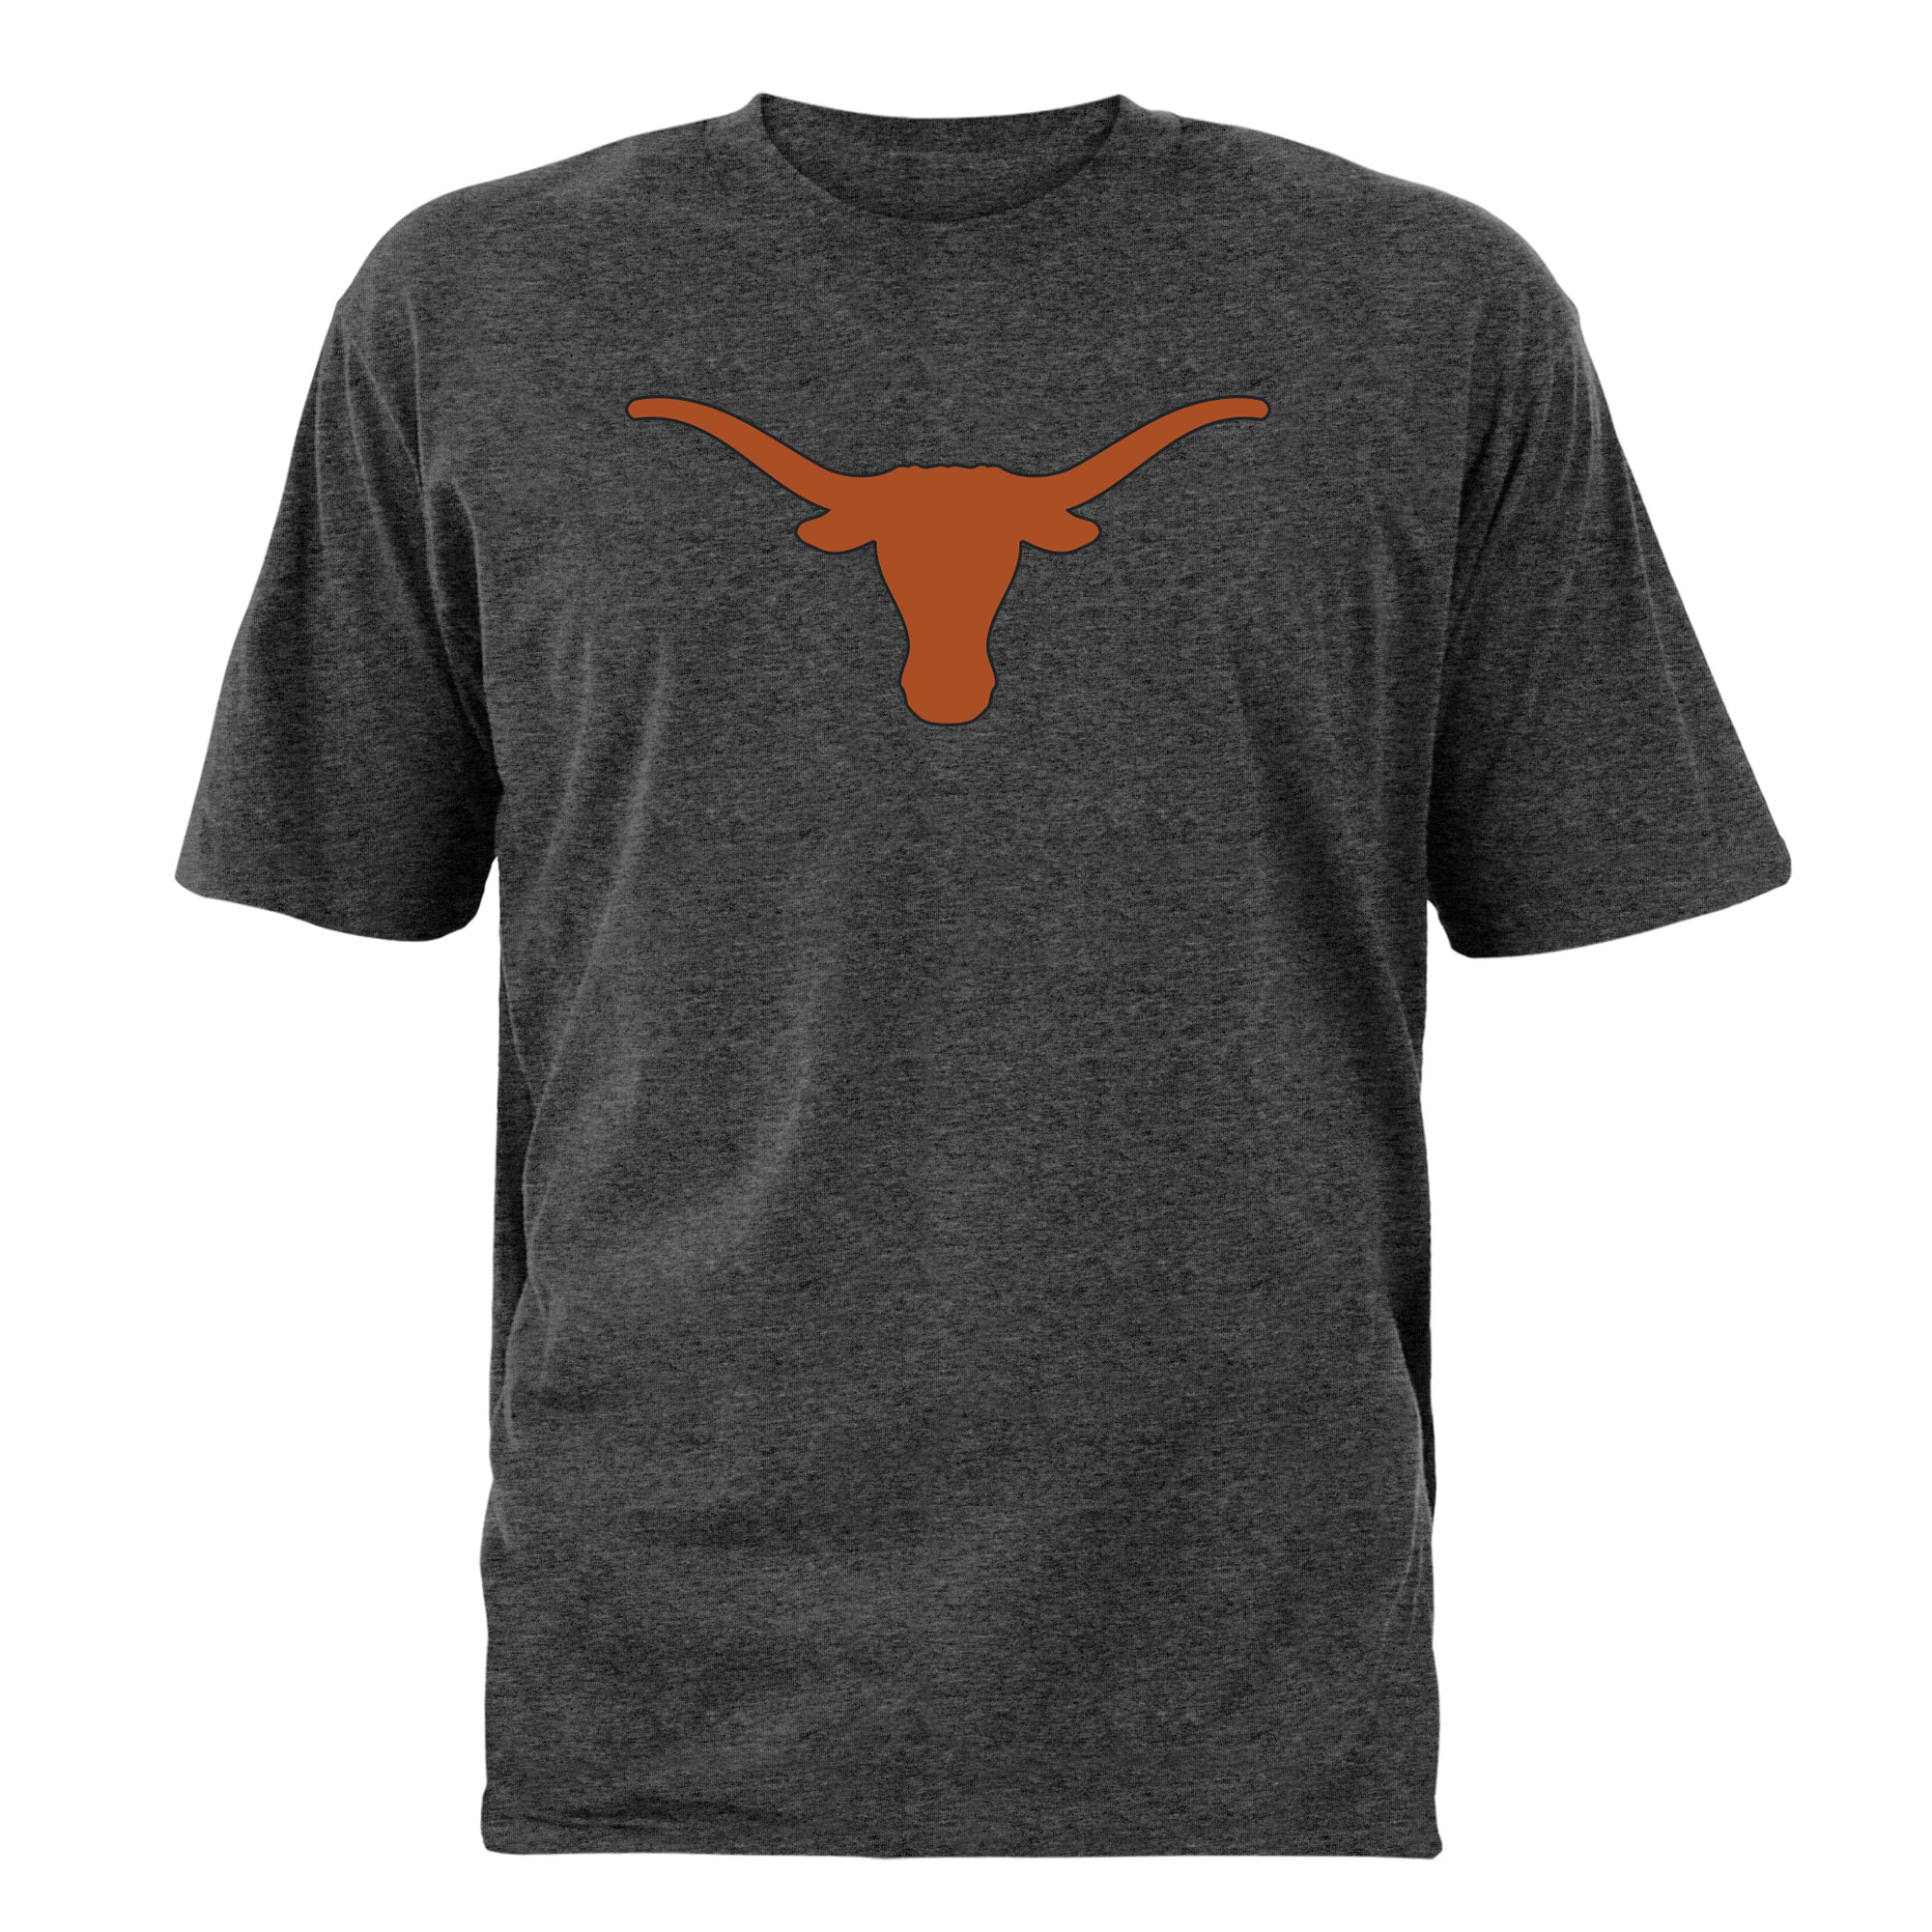 Men's Charcoal Texas Longhorns Static Silhouette T-Shirt